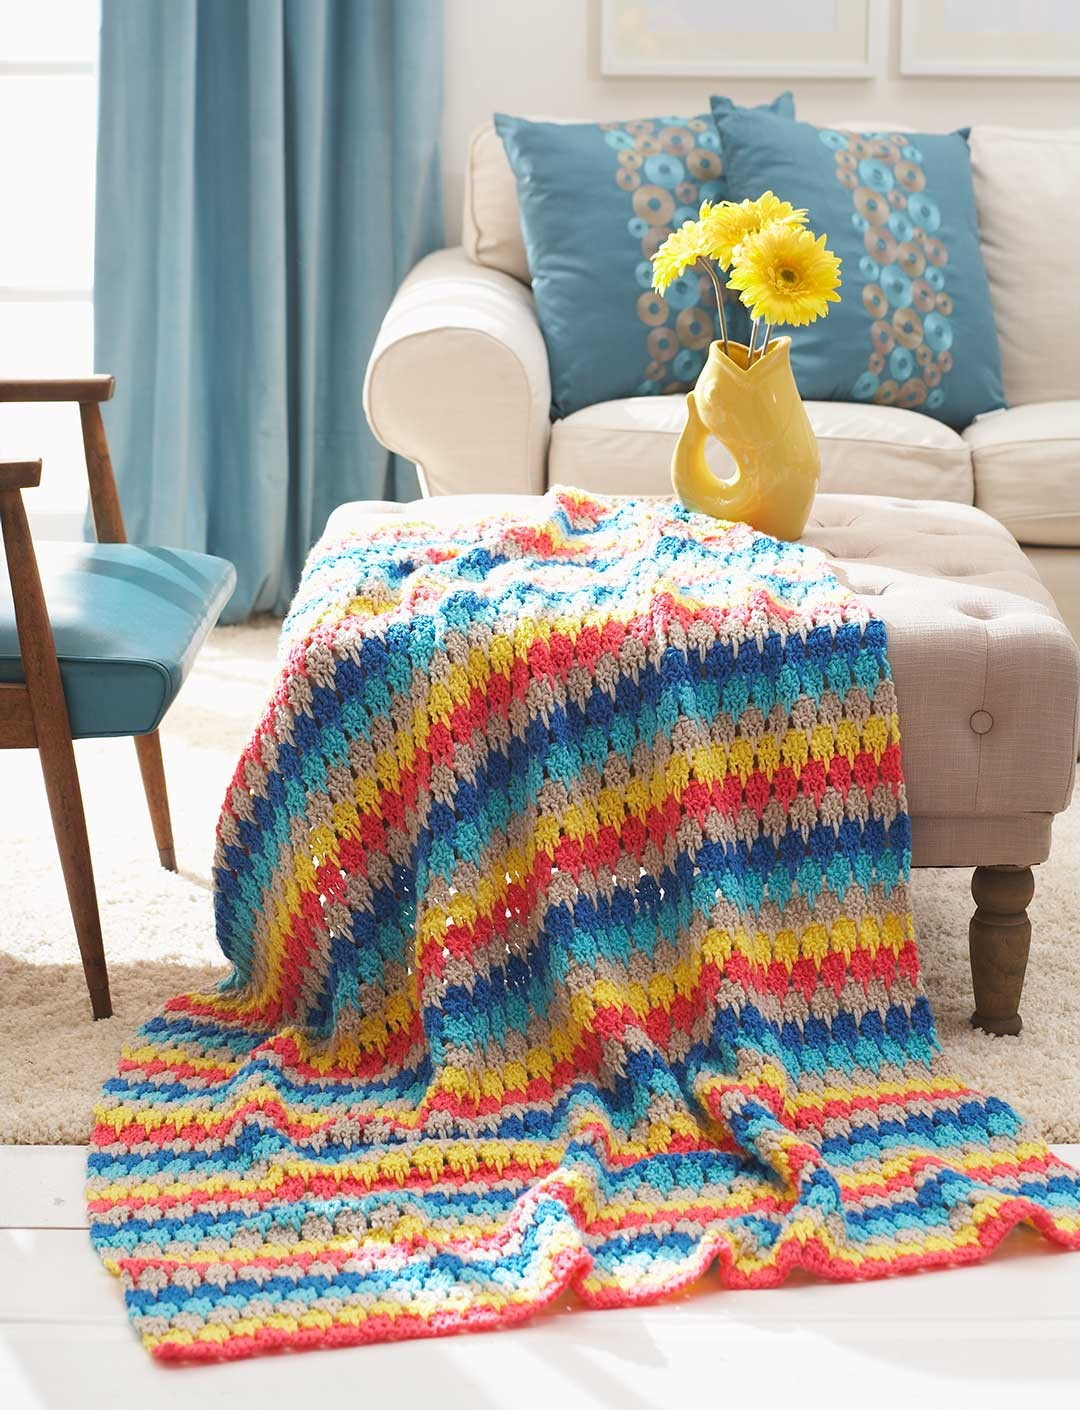 Bernat Crochet Patterns New Bernat Larksfoot Blanket Crochet Pattern Of Awesome 45 Photos Bernat Crochet Patterns